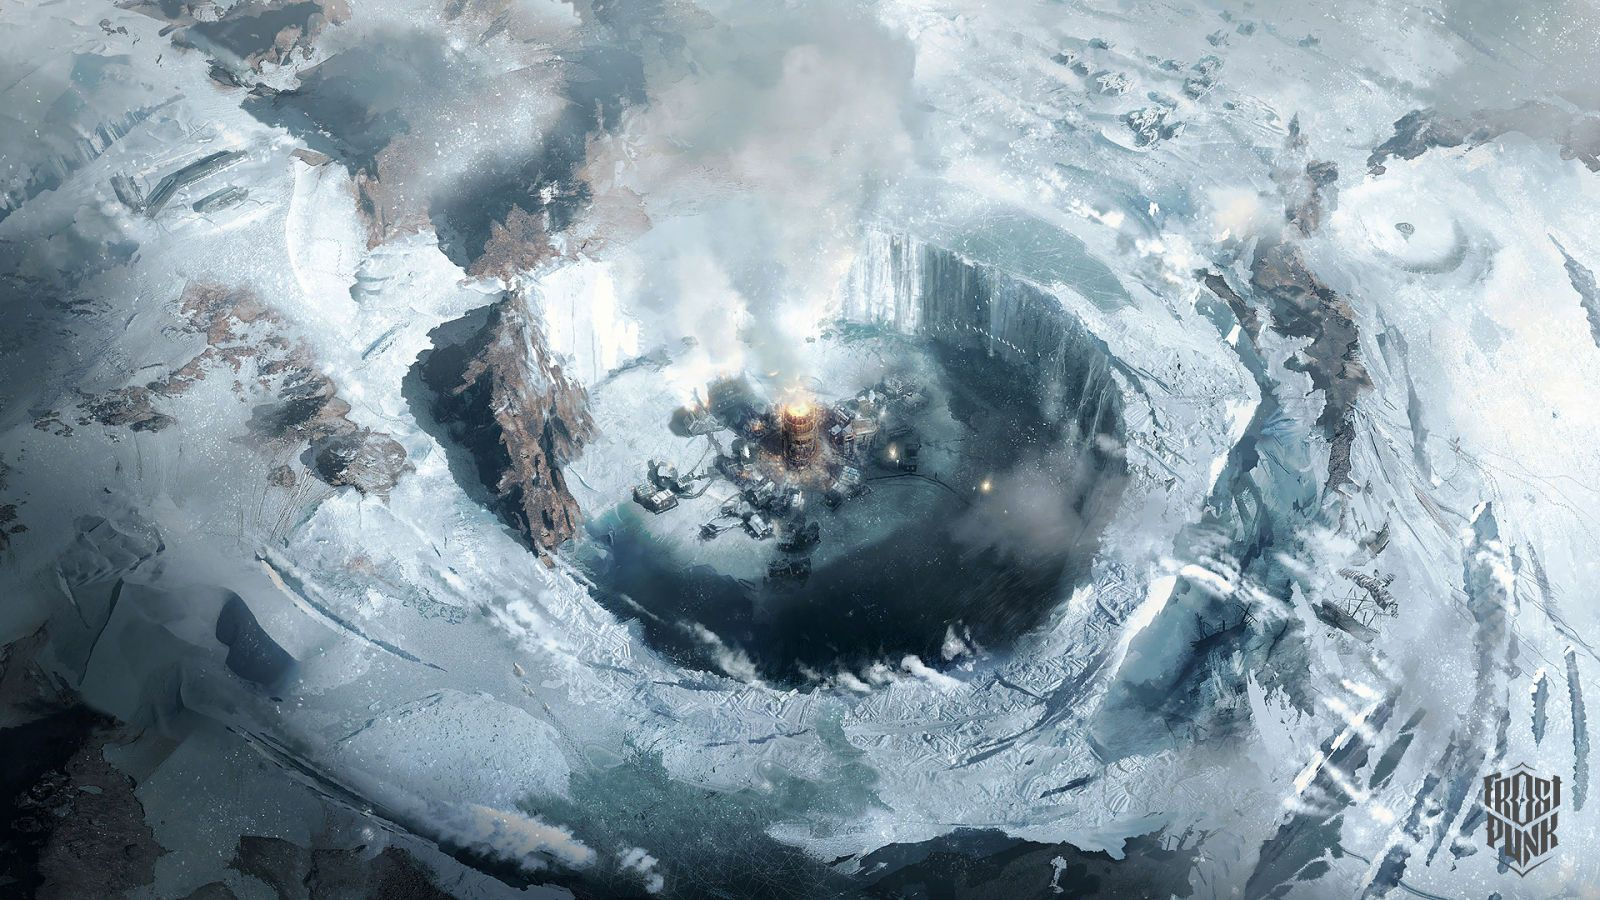 The Art Of Frostpunk Hd Wallpaper Art Artwork